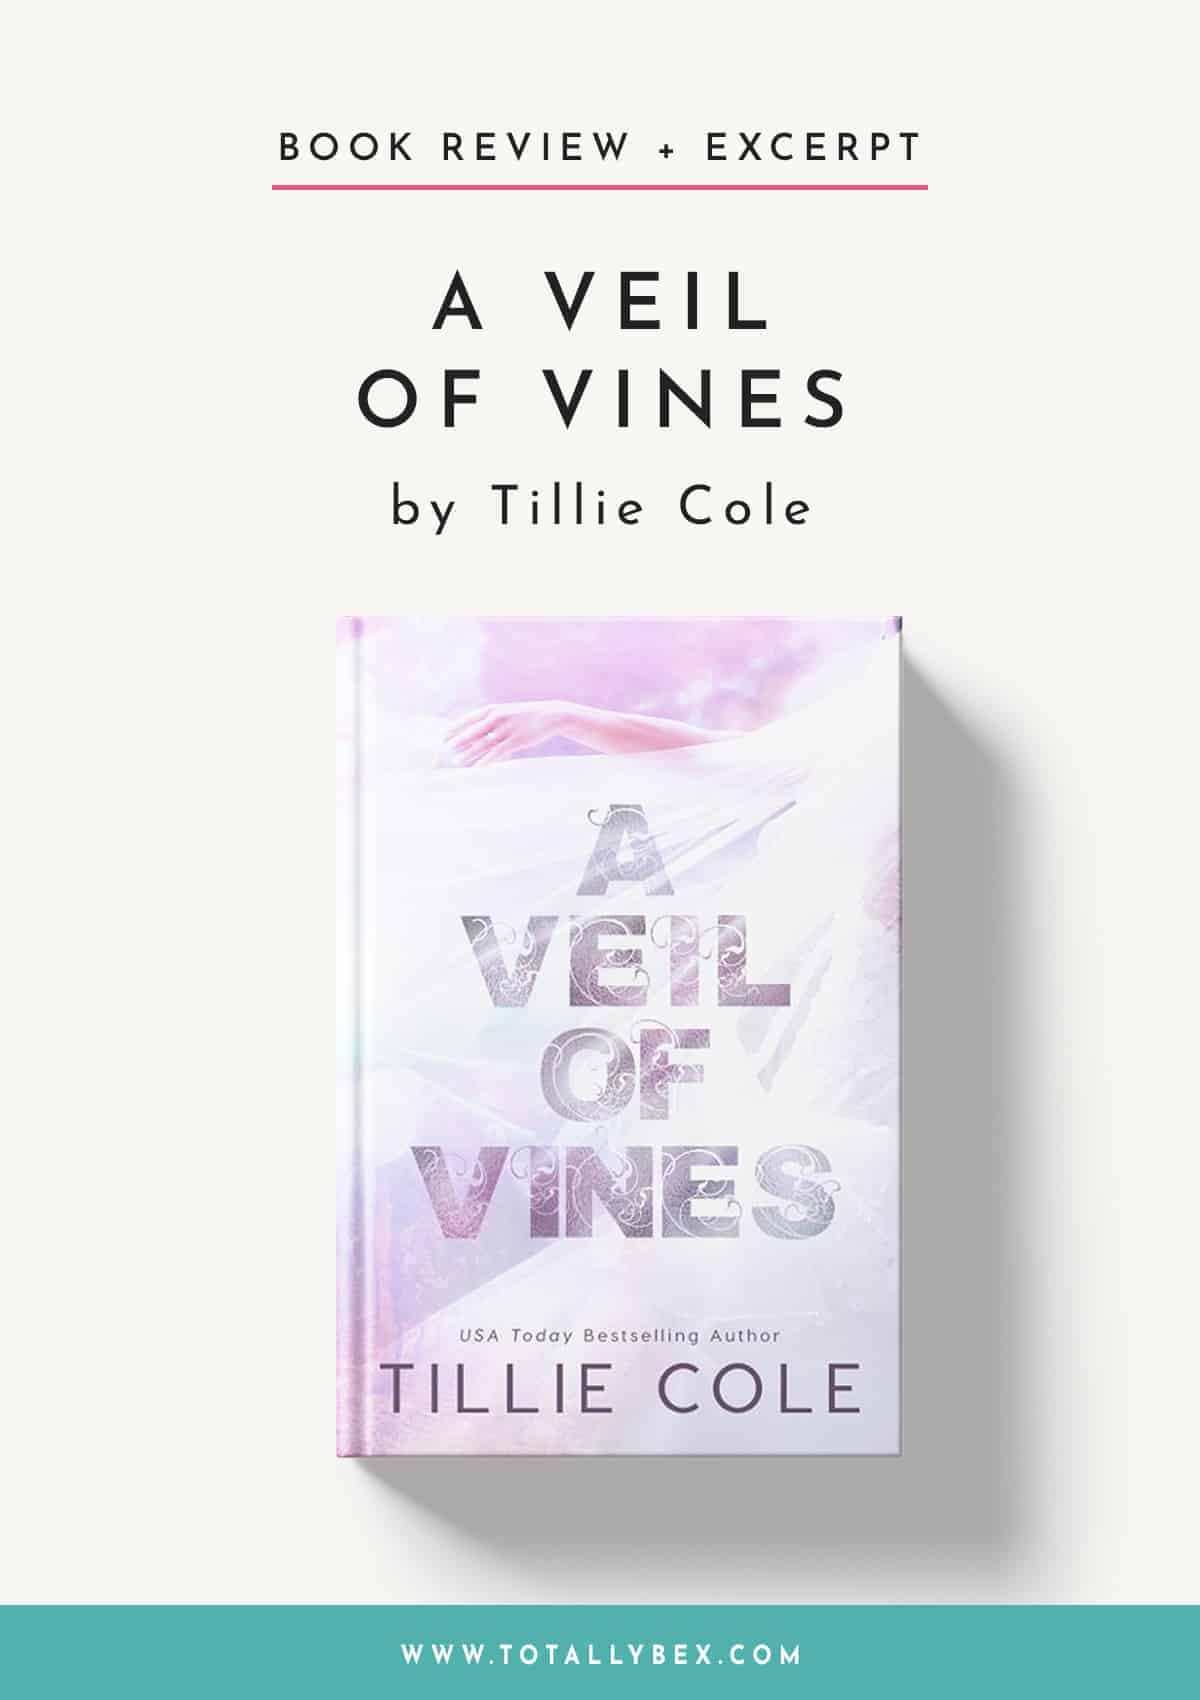 A Veil of Vines by Tillie Cole-Book Review+Excerpt